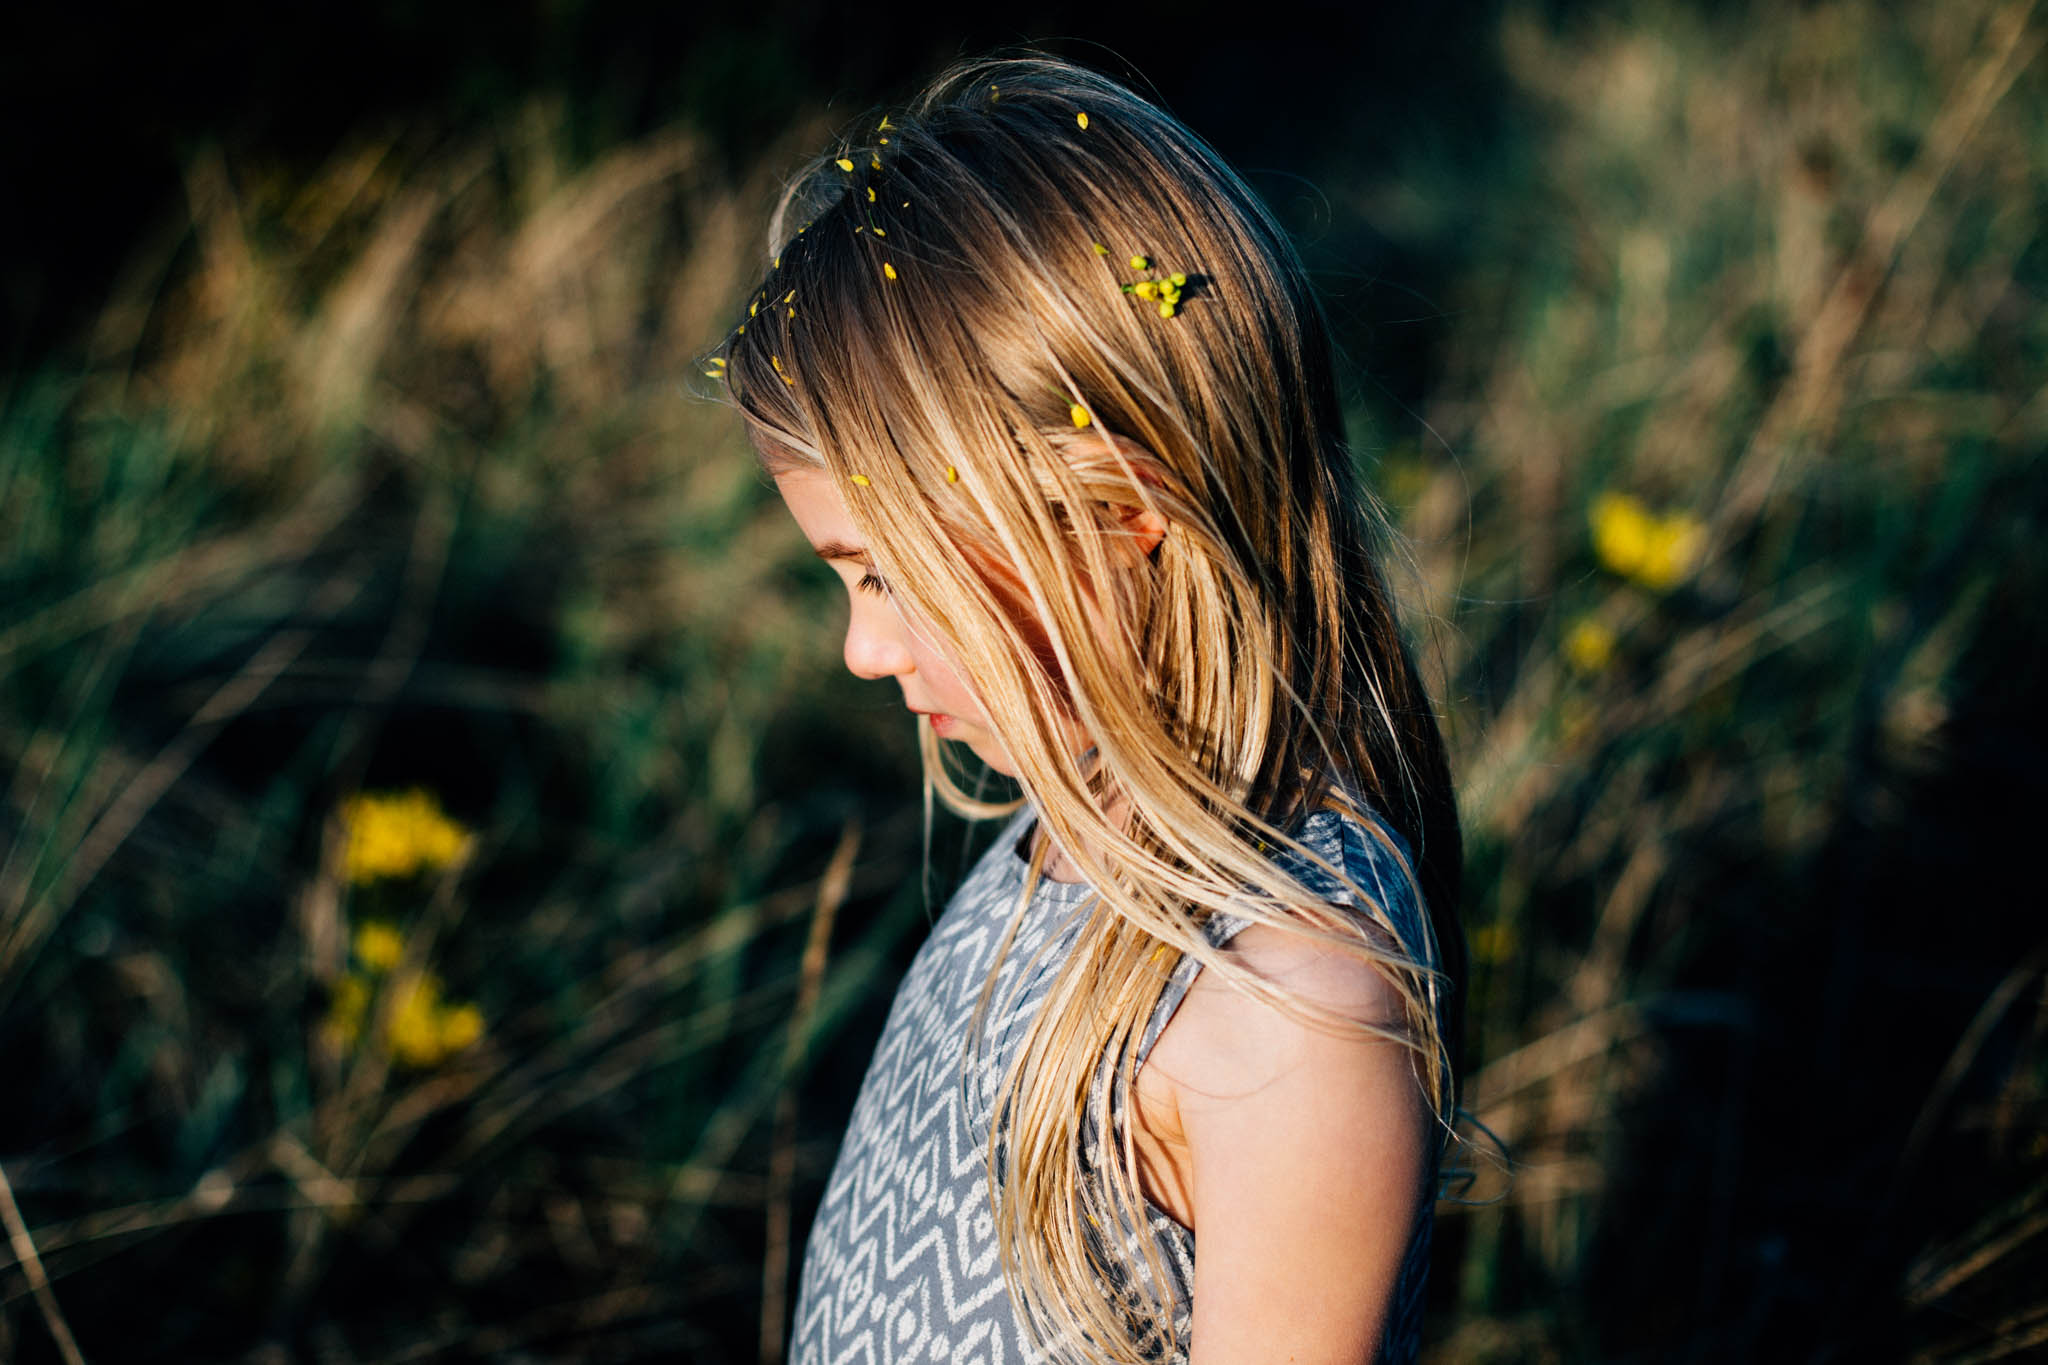 Vancouver commercial children's fashion photographer - Emmy Lou Virginia Photography-19.jpg